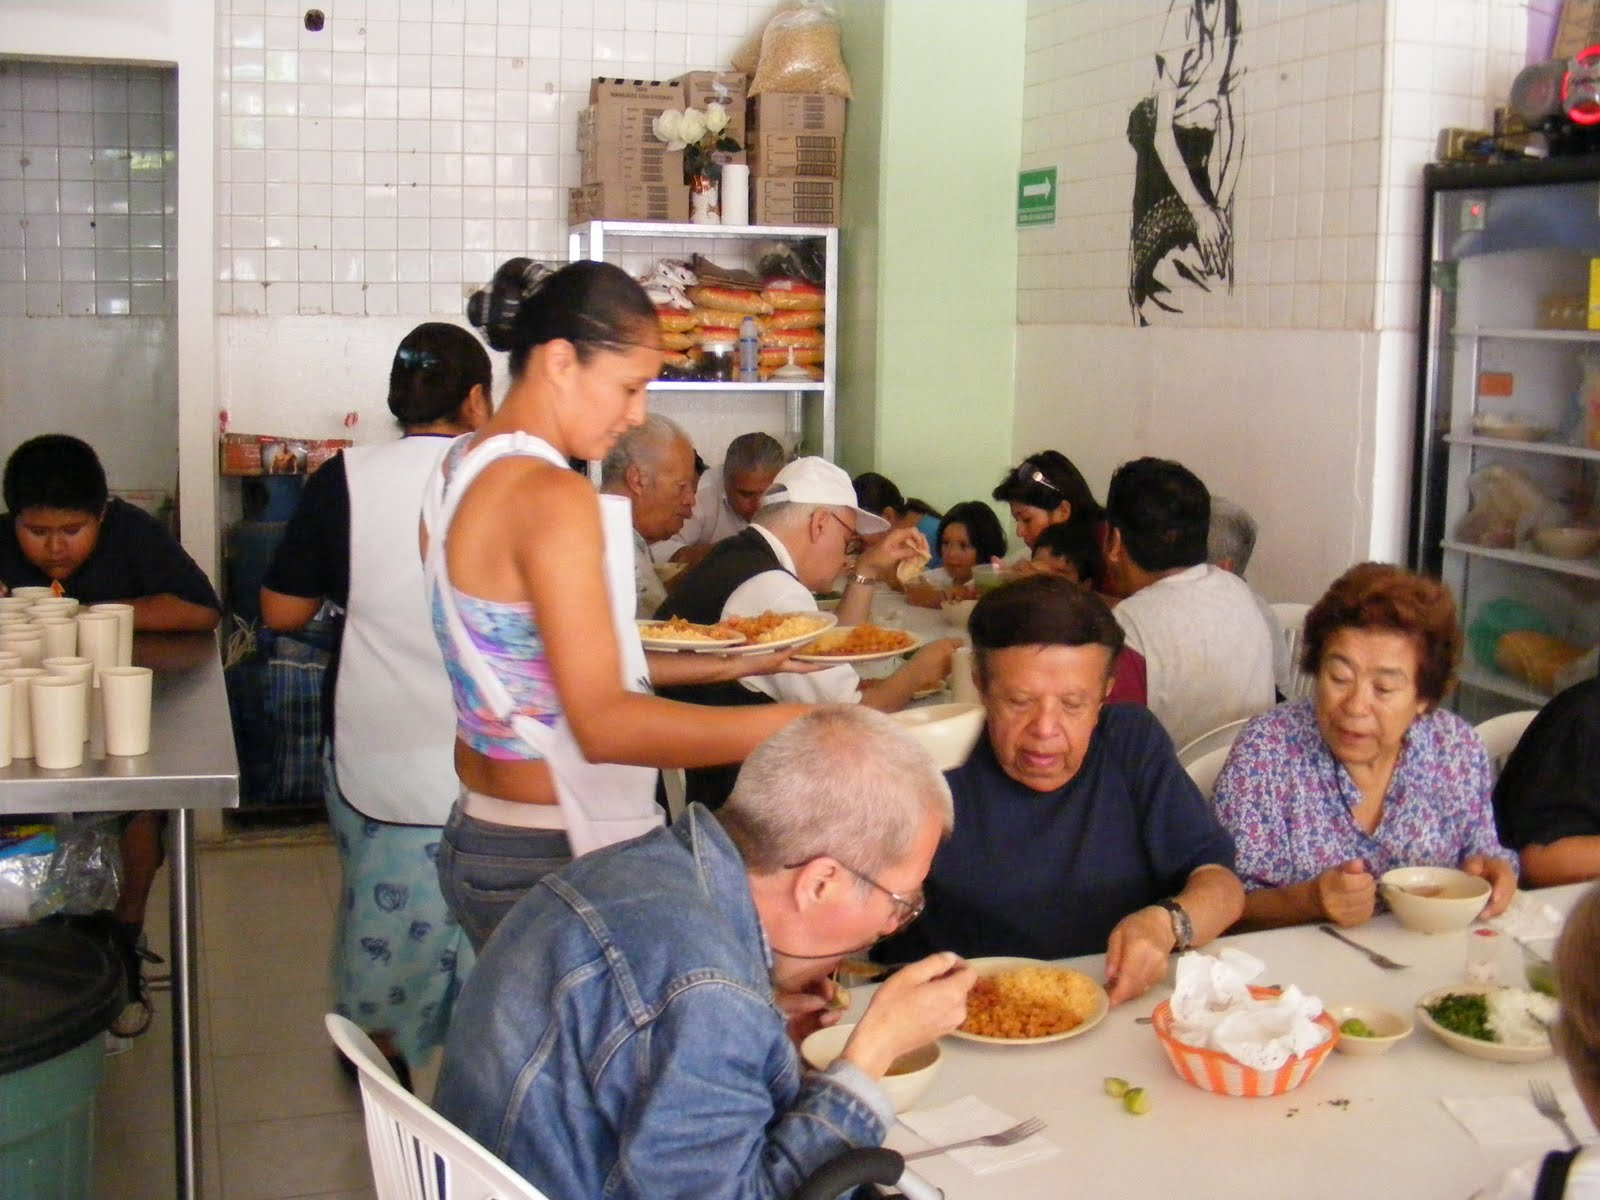 Dining At The Community Eatery For Social DevelopmentMexico City Brother Can You Spare Ten PesosMexico Citys Rather Tasty Proposal